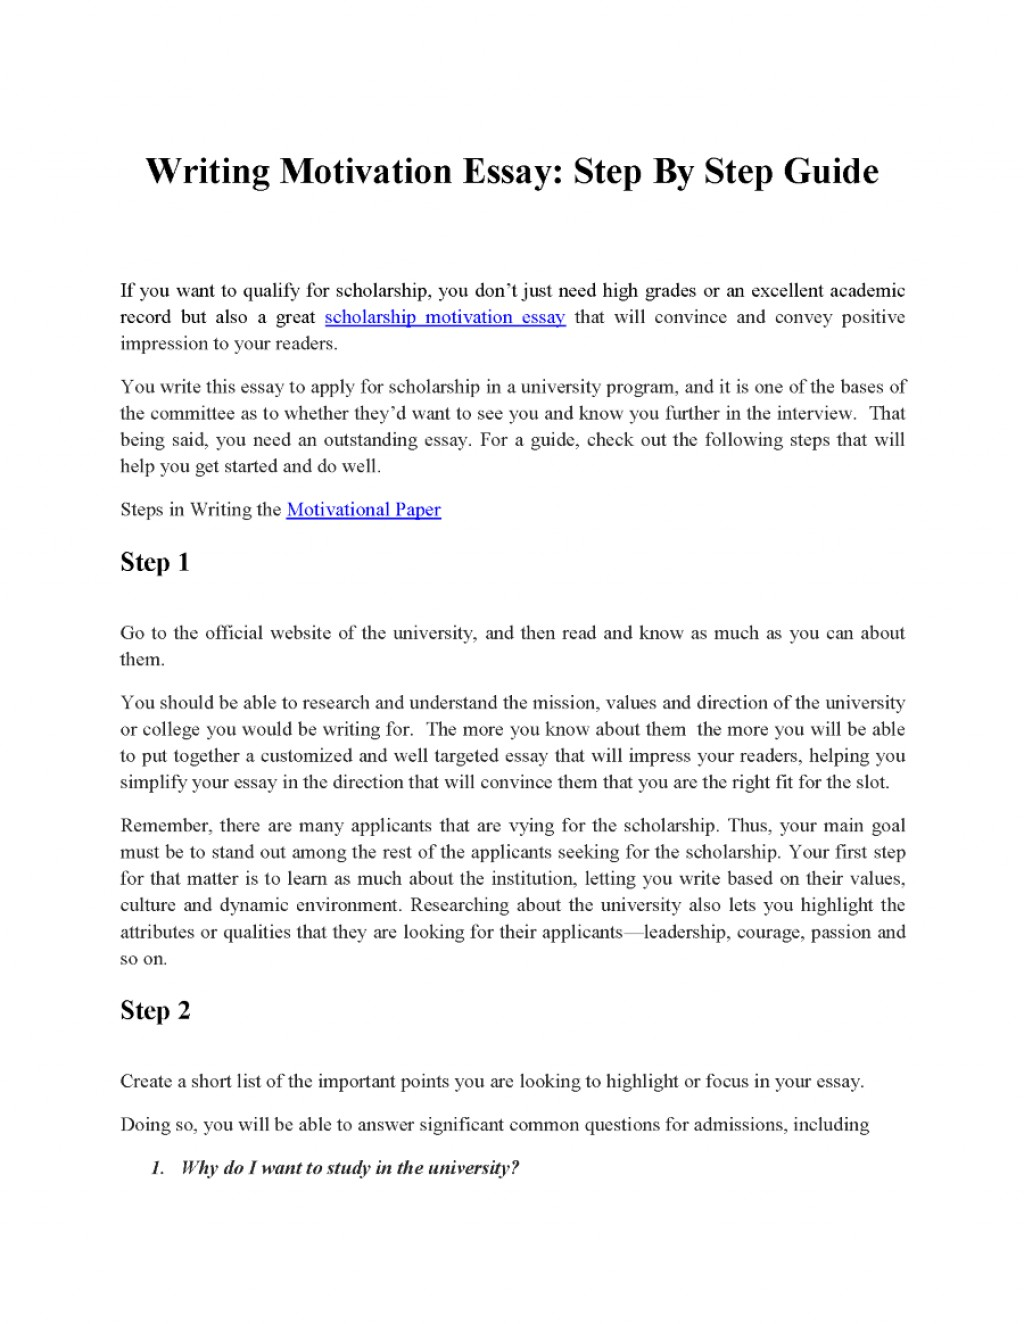 024 2948595 636128784141107500 Slide1 Fs Steps Writing Research Best 10 Paper To A Page Pdf Large